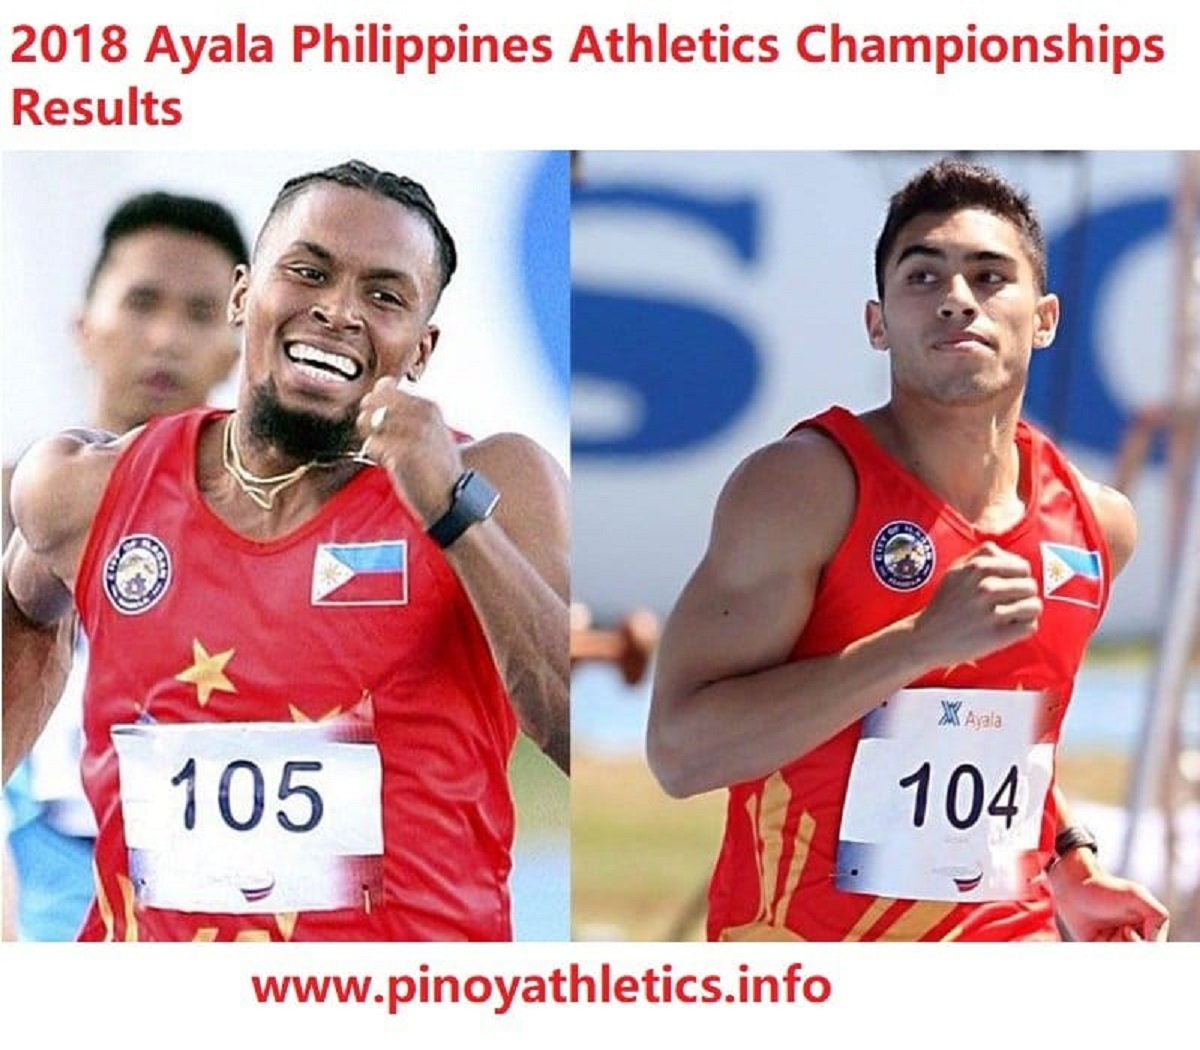 2018 Ayala Philippines National Open Athleics Results 8